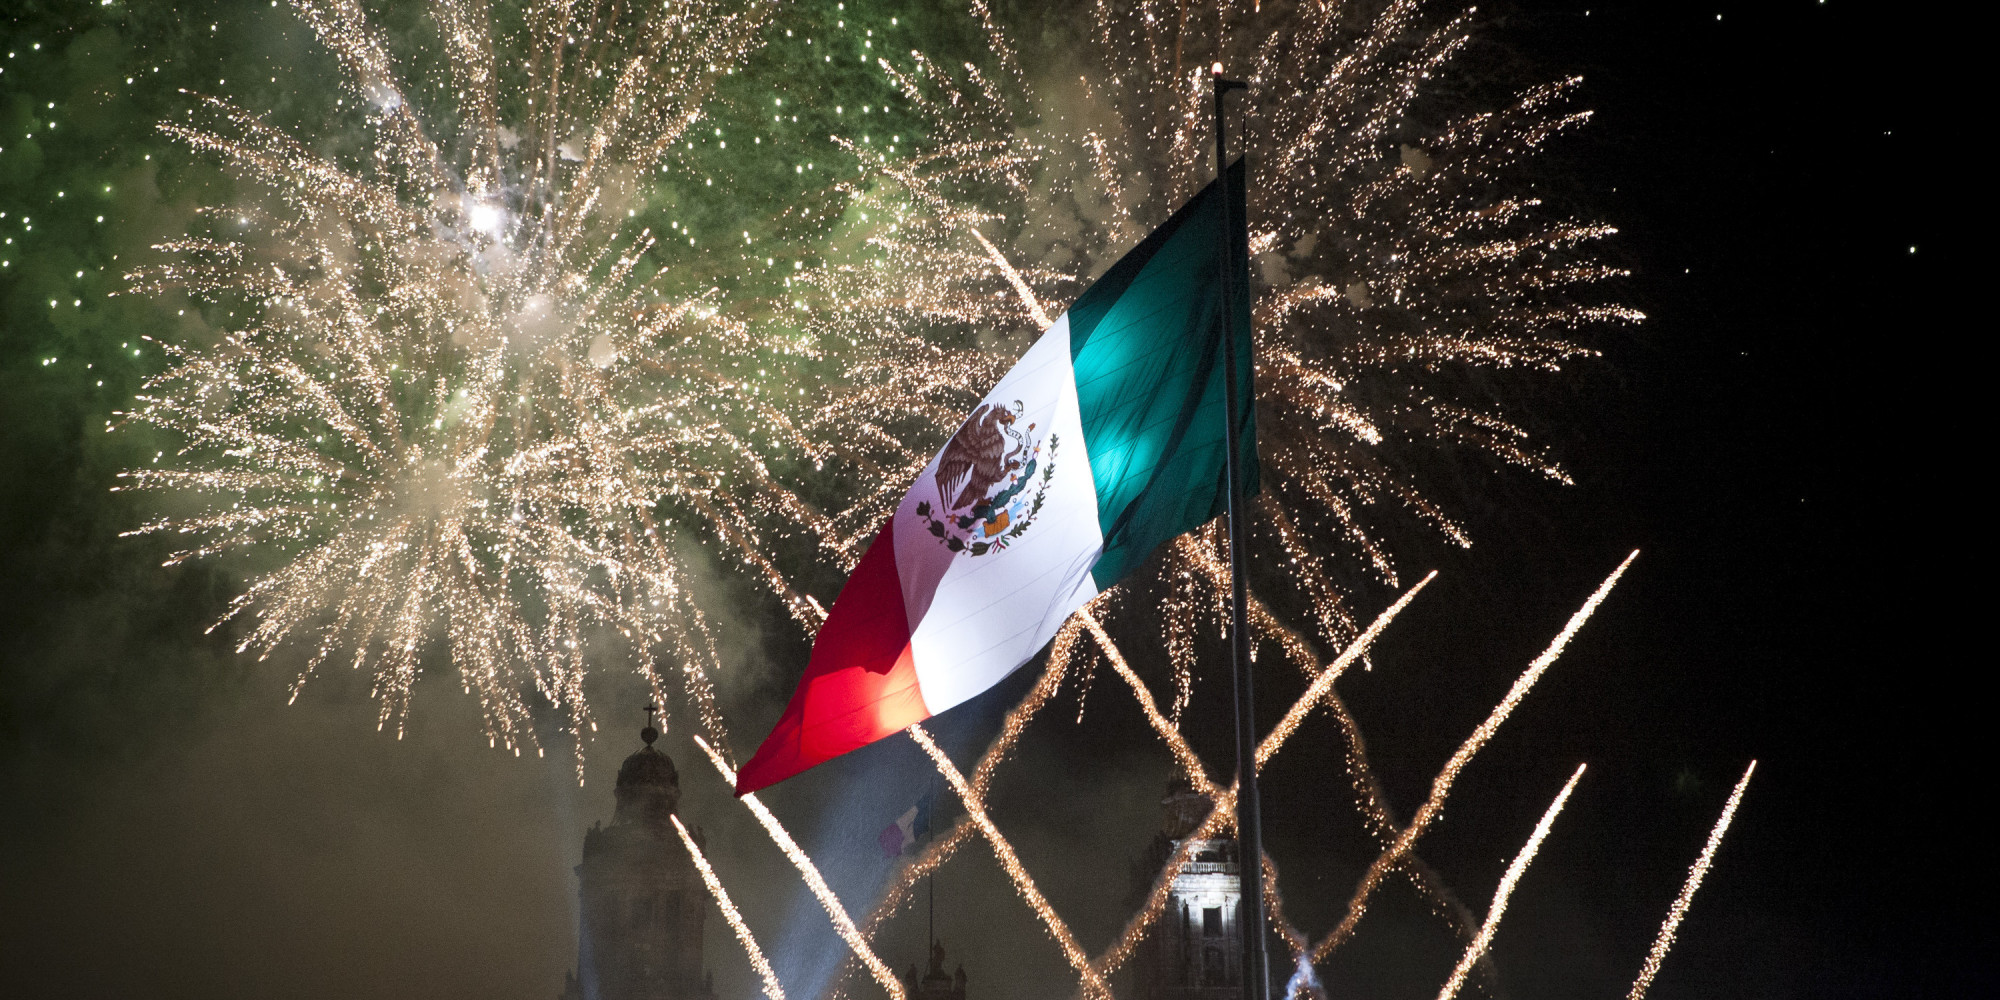 mexico independence day Mexican independence day is a major mexican celebration held every year one september 15th, the eve of mexican independence day, the celebrations begin on september 15th, 1810, father hidalgo, who had been planning a revolt against the spanish government, discovered that the spanish had ordered.